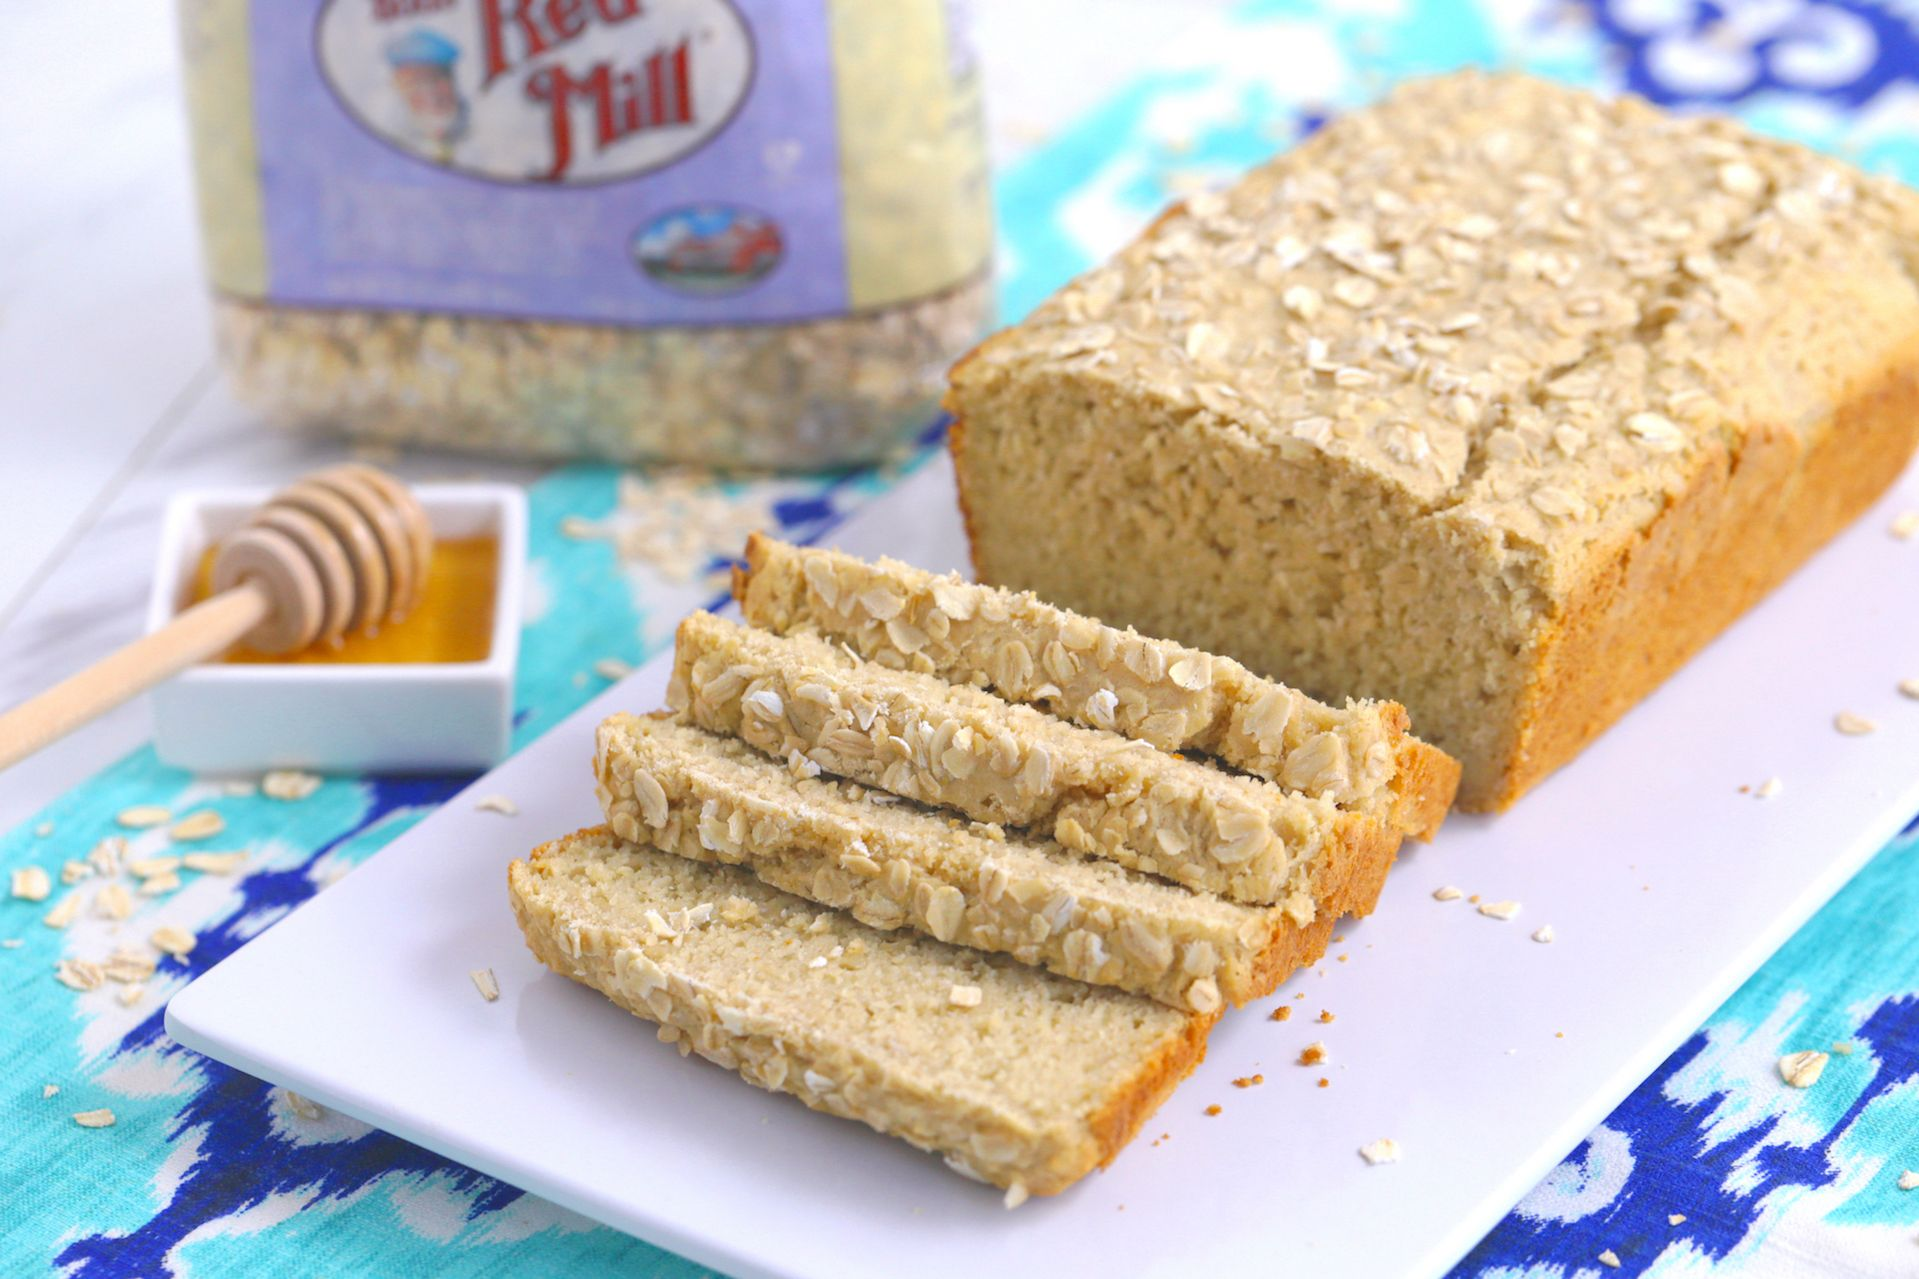 Oat My Goodness This Honey Oat Bread Recipe Is Just As Delicious As It Looks Plus Every Sl Gluten Free Honey Oat Gluten Free Honey Oat Bread Oat Bread Recipe